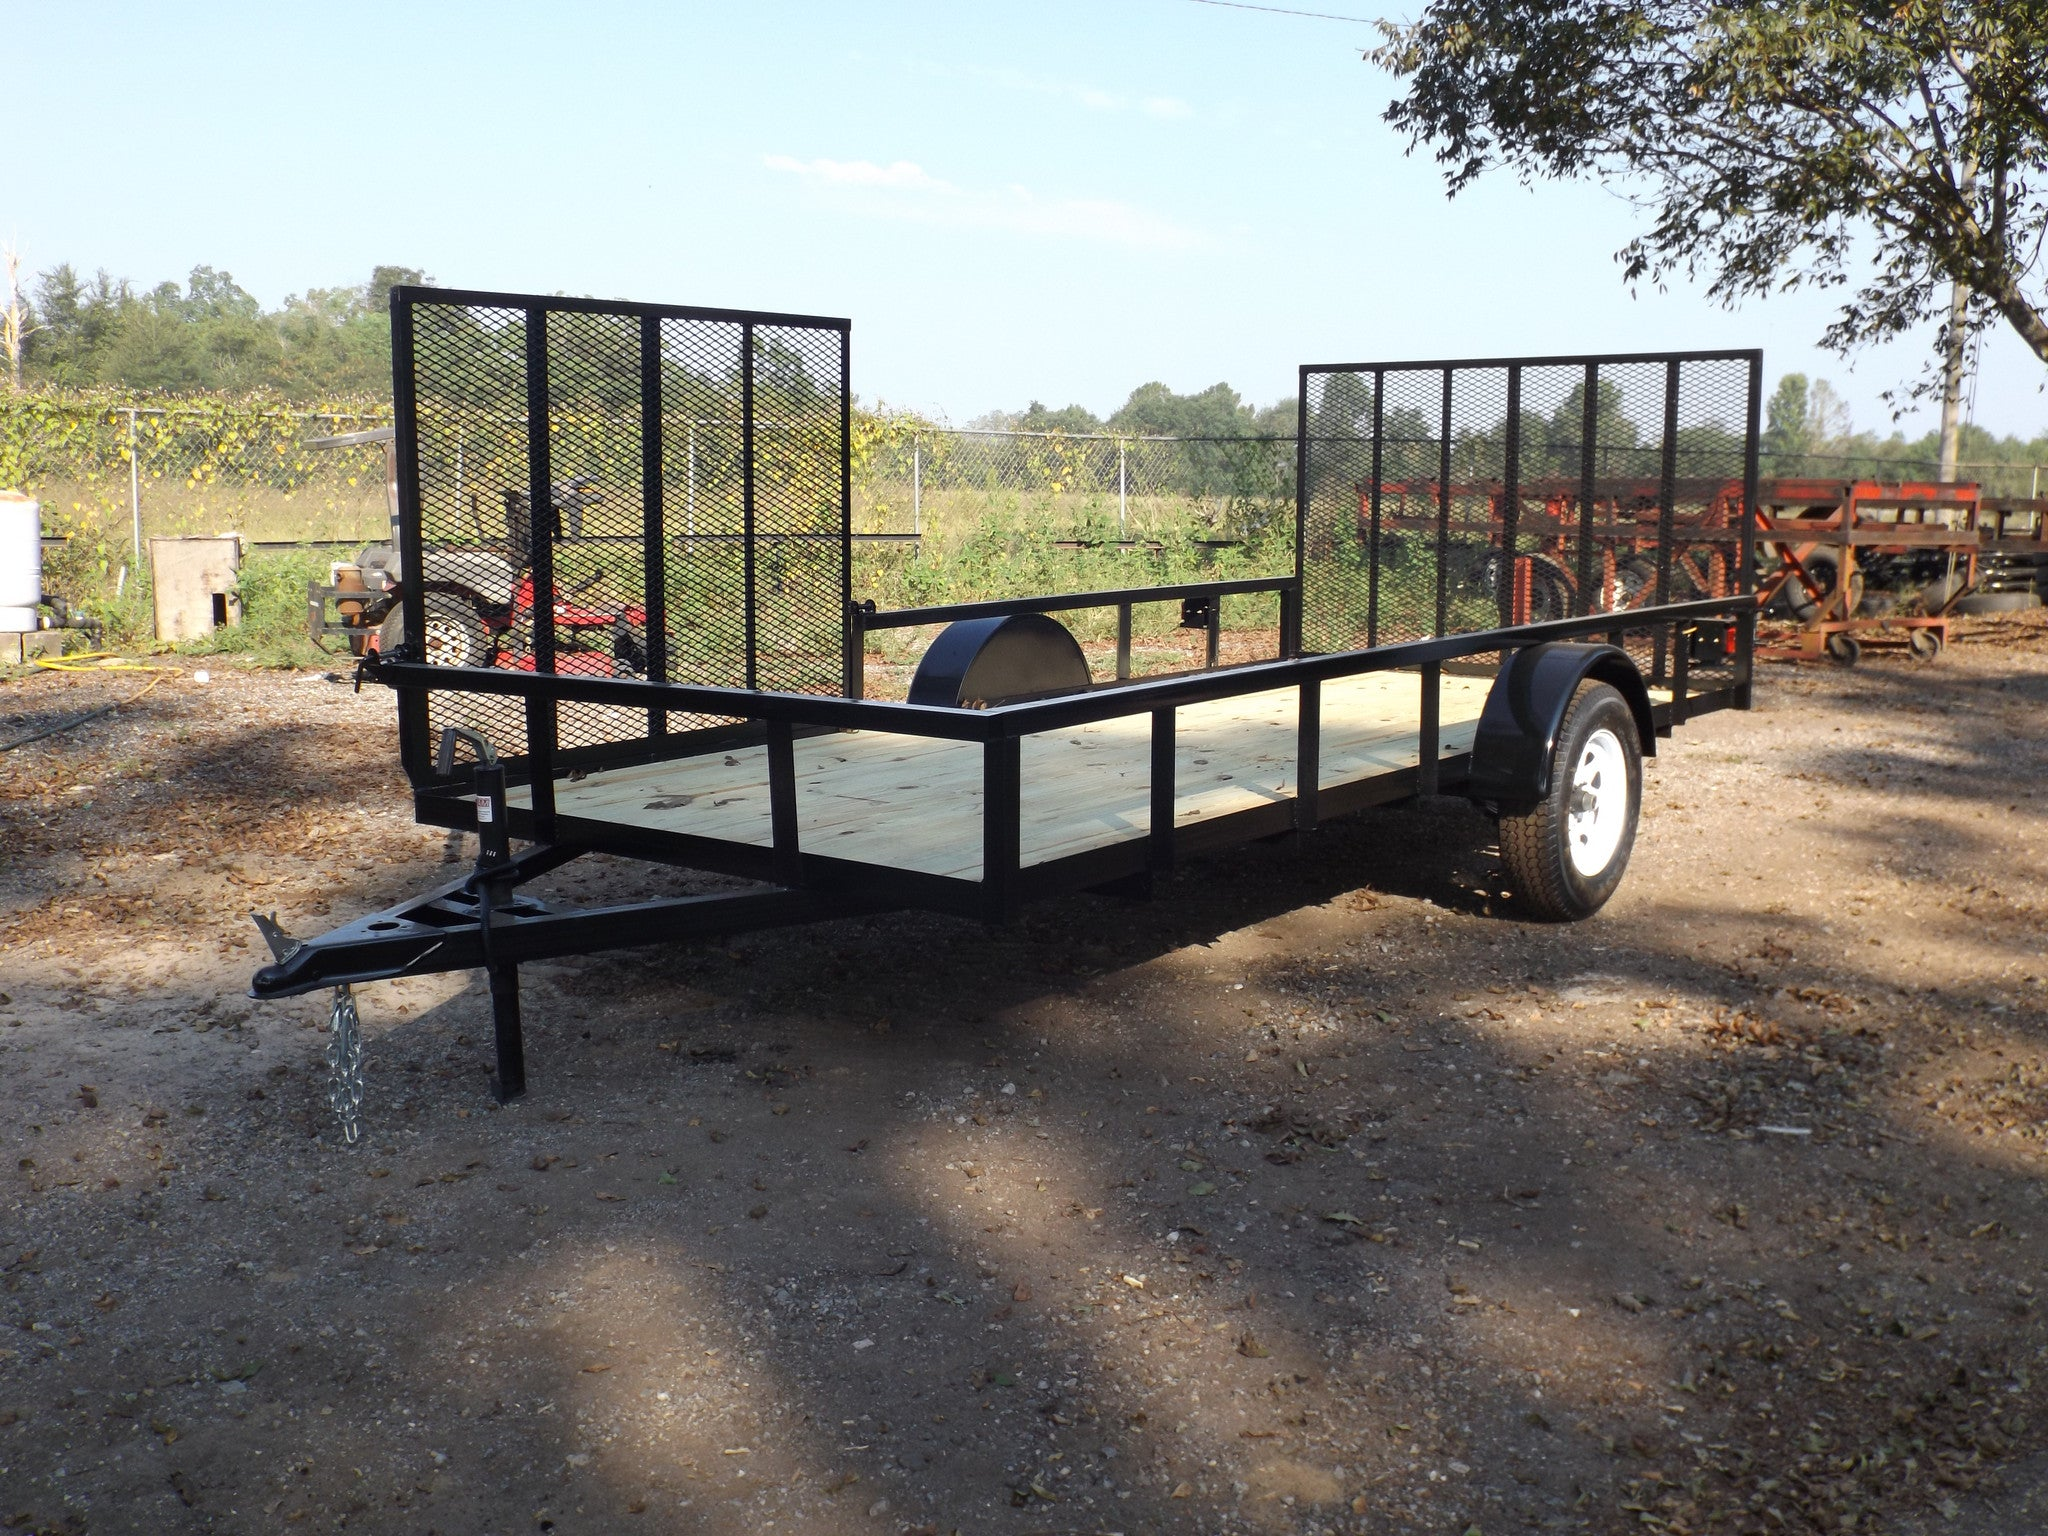 Single Axle Utility Trailer Mobile Alabama Bye Rite Light Wiring On Lights Uses Heavy Duty Landscaping Car Trailers Robertsdale Baldwin County